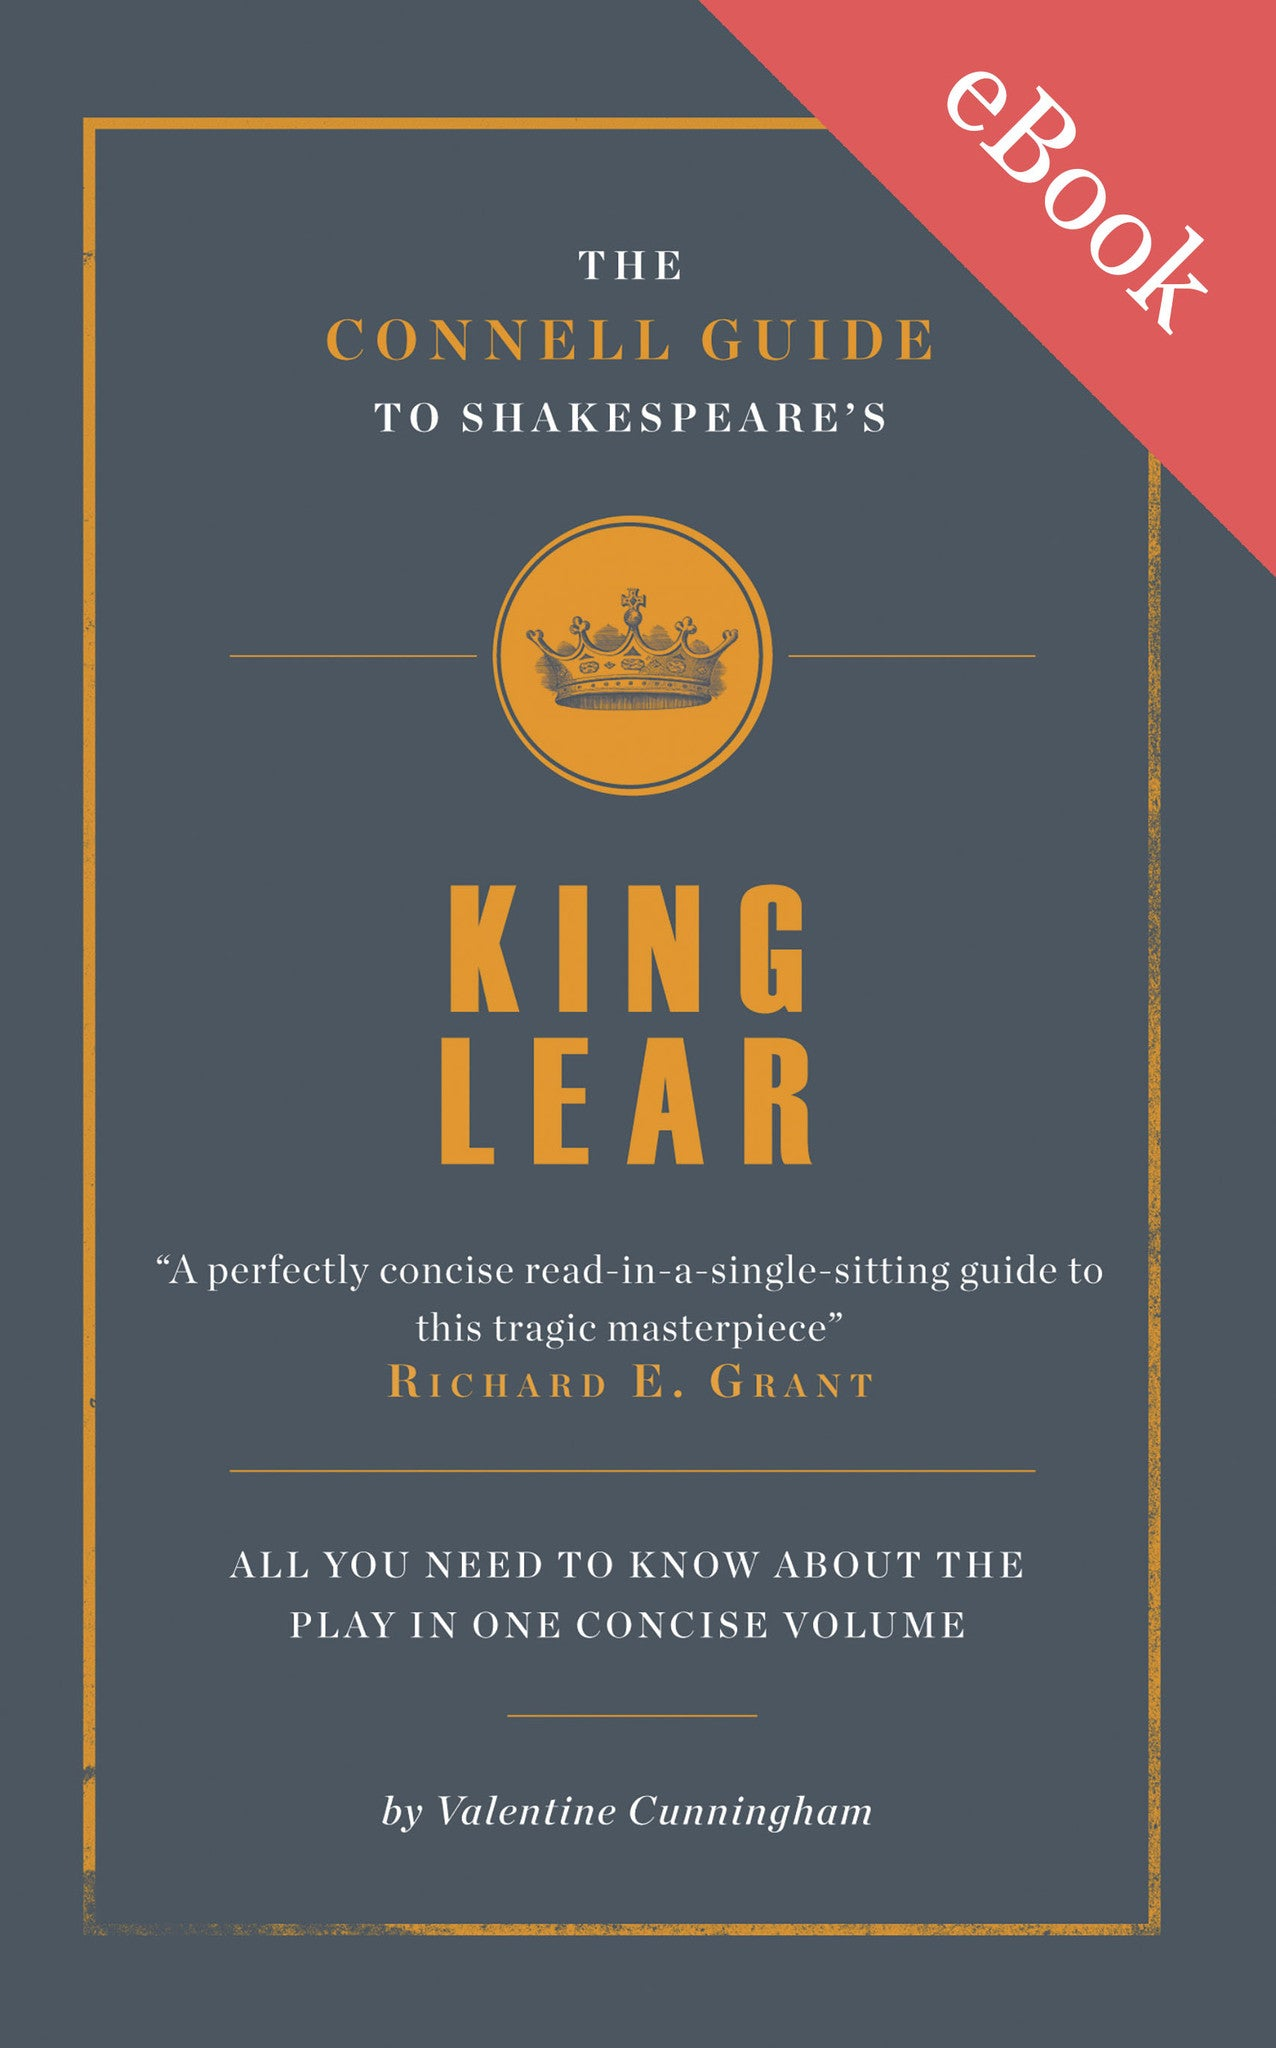 King Lear: Study Guide